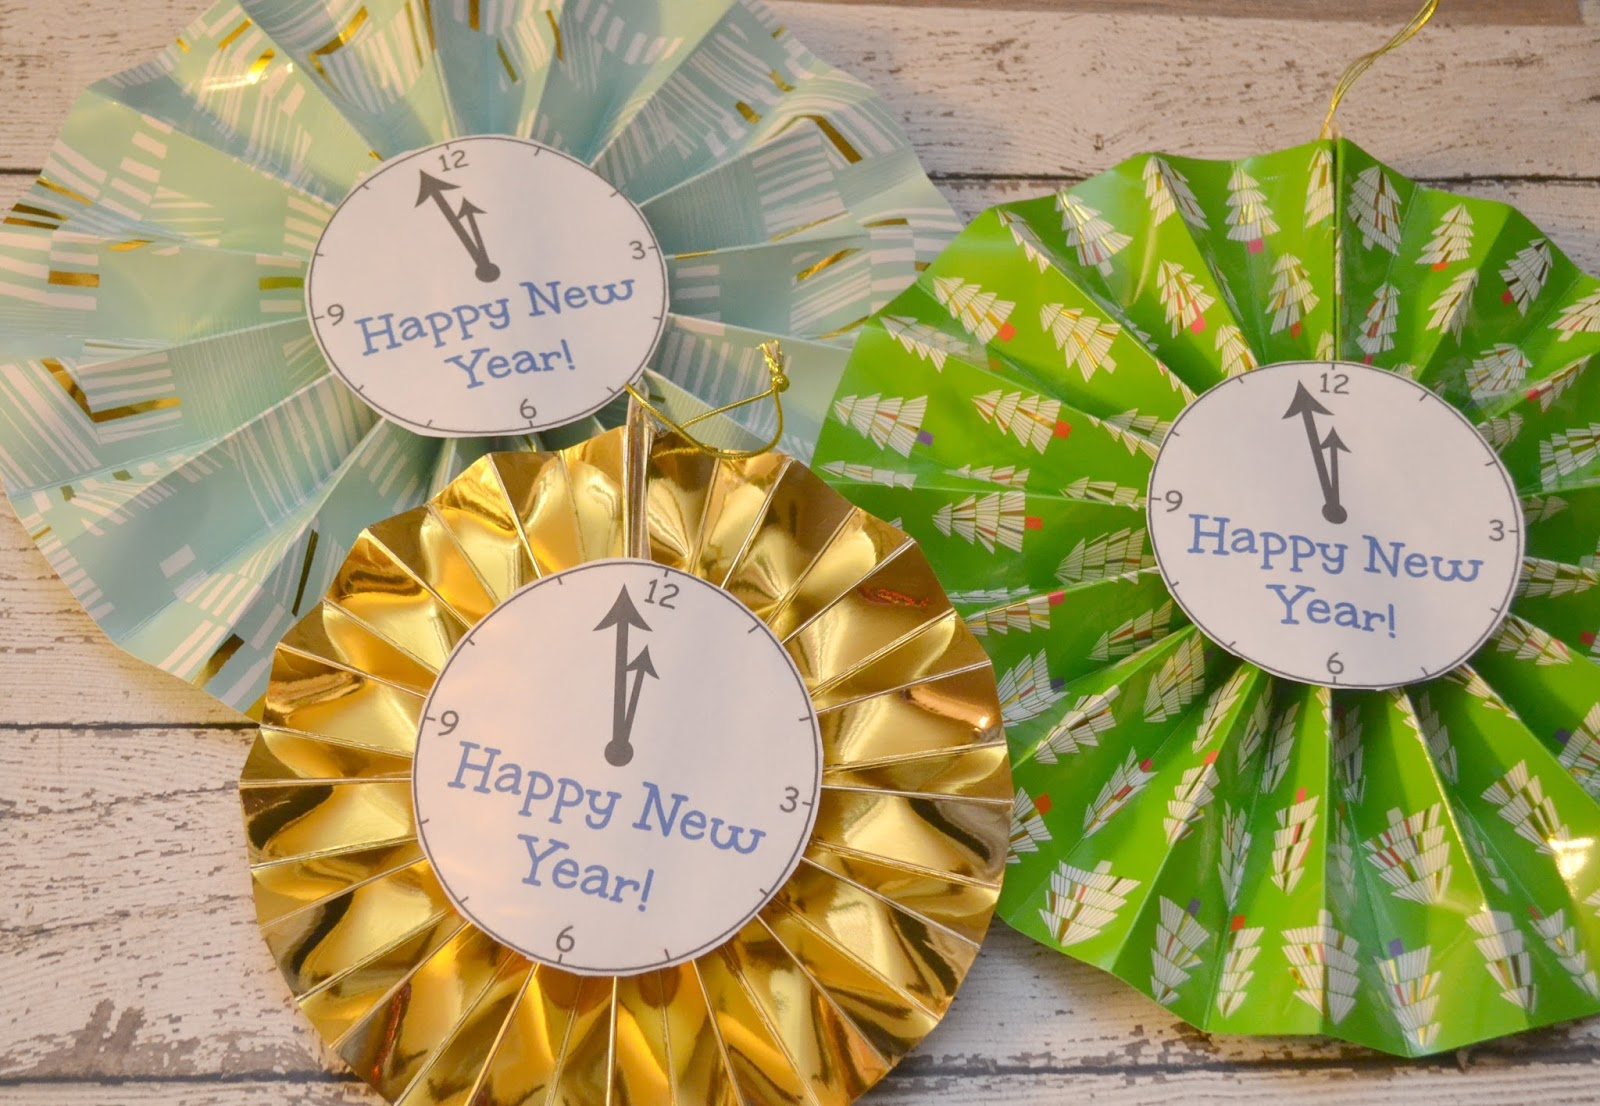 New Year's Paper Fan Clock Decorations & A NYE Party ...